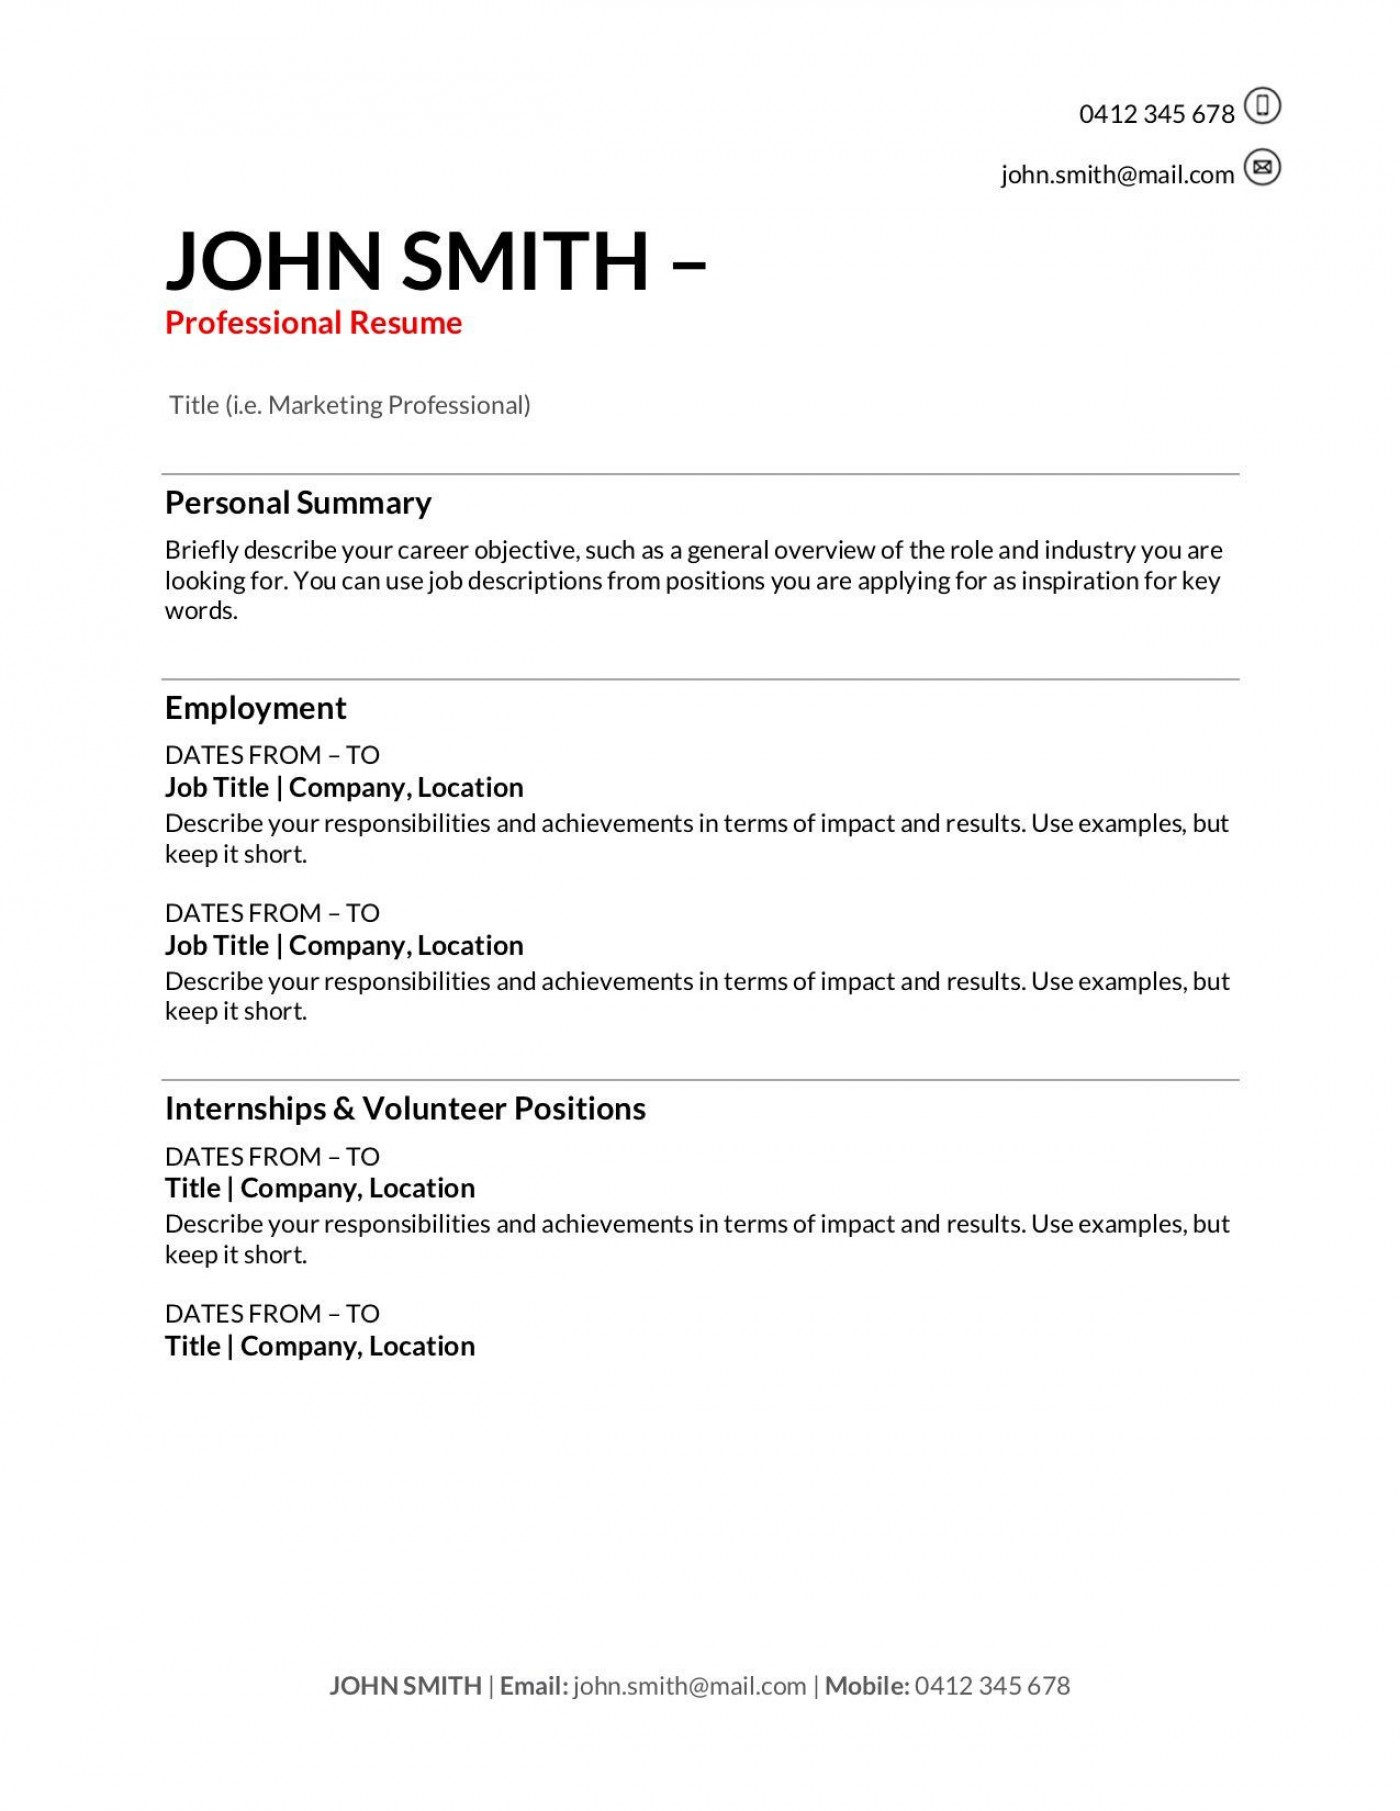 006 Impressive Resume Template For First Job High Def  Student Australia In School Teenager1400